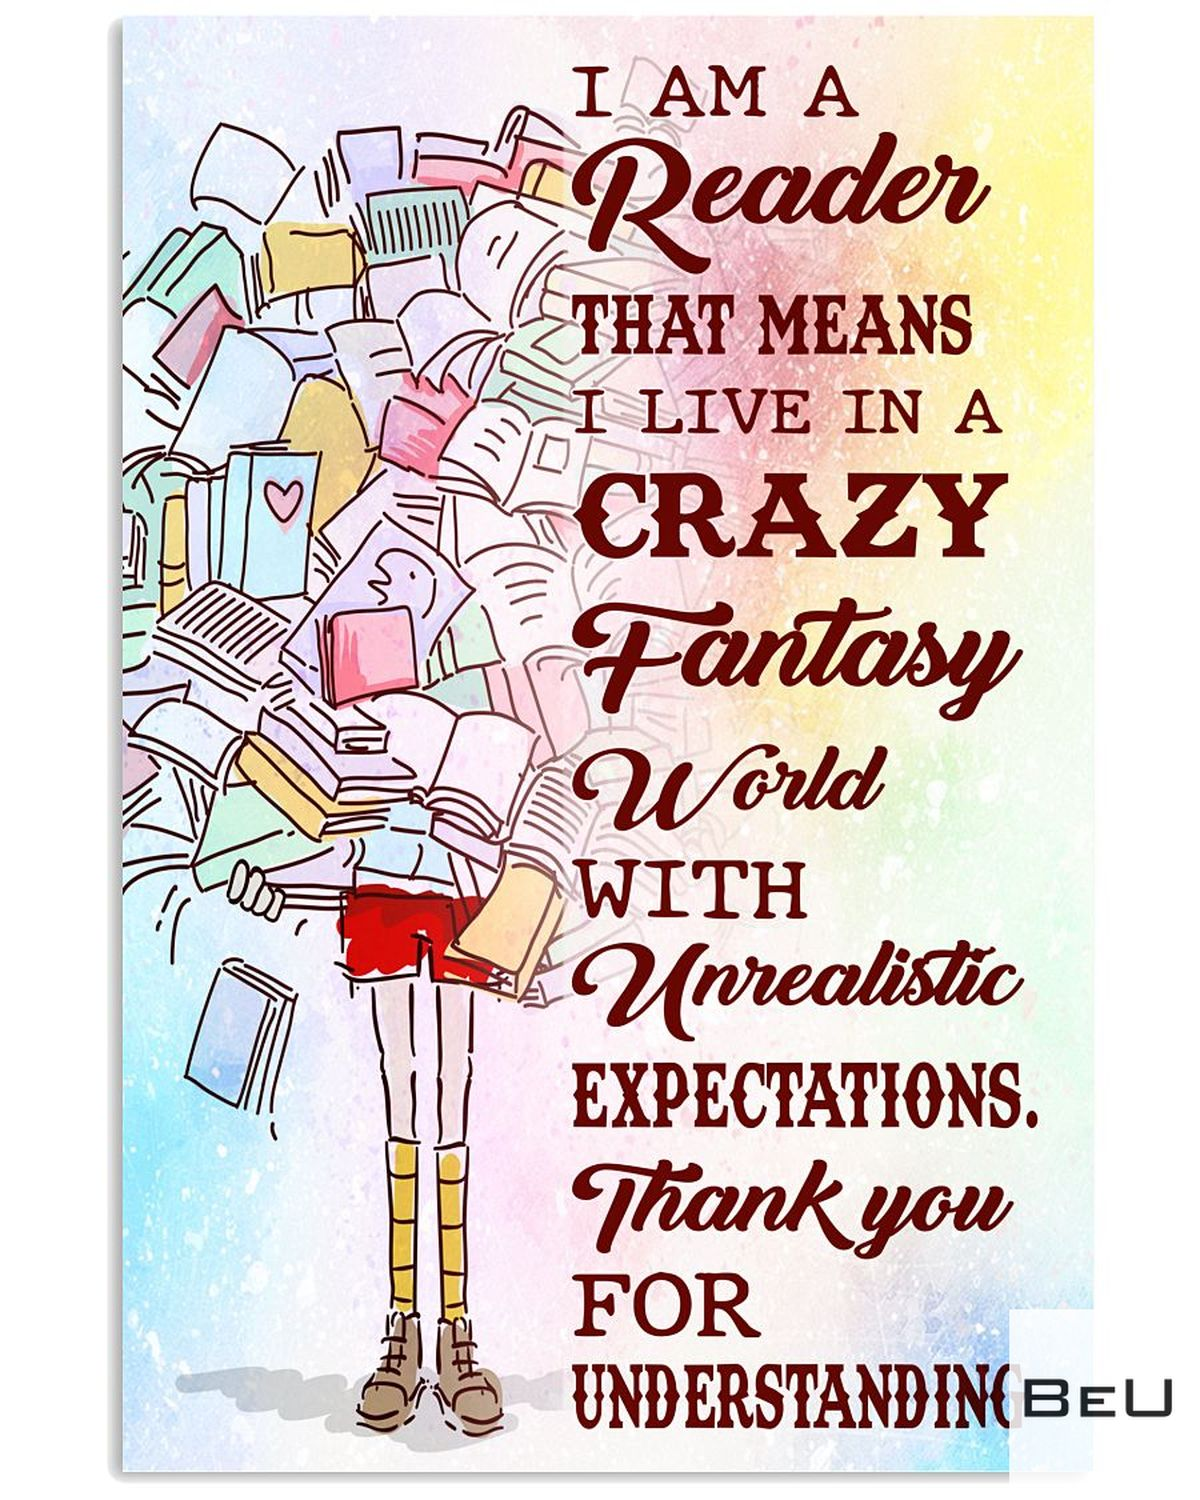 Librarian I Am A Reader That Means I Live In A Crazy Fantasy World With Unrealistic Expectations Poster